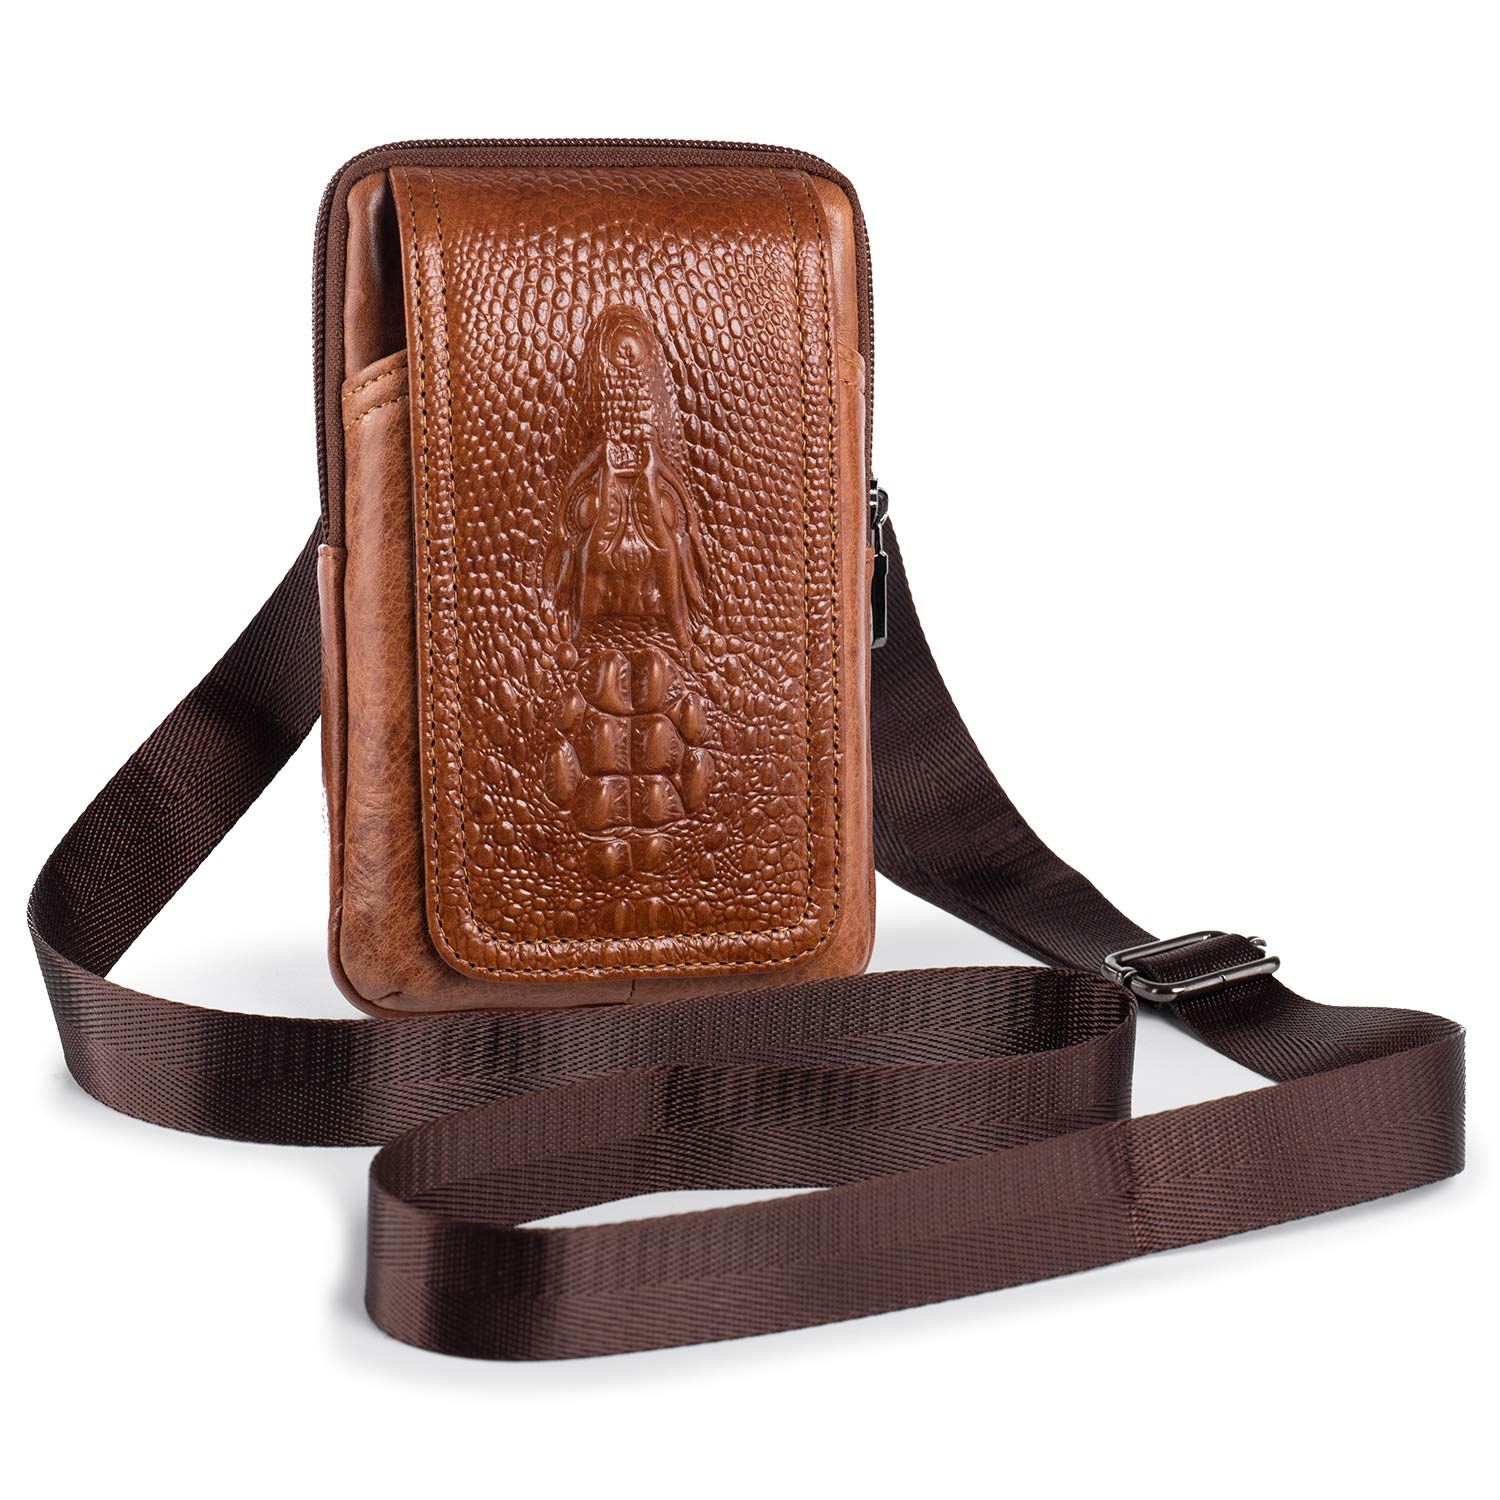 Hengwin Leather Men Leather Shoulder Bag Small Cross body Bags, Cellphone Holster Waist Bag Pouch Belt Clip for iPhone XR XS Max 6 7 8 Plus Galaxy S8/S9 Plus (Brown)